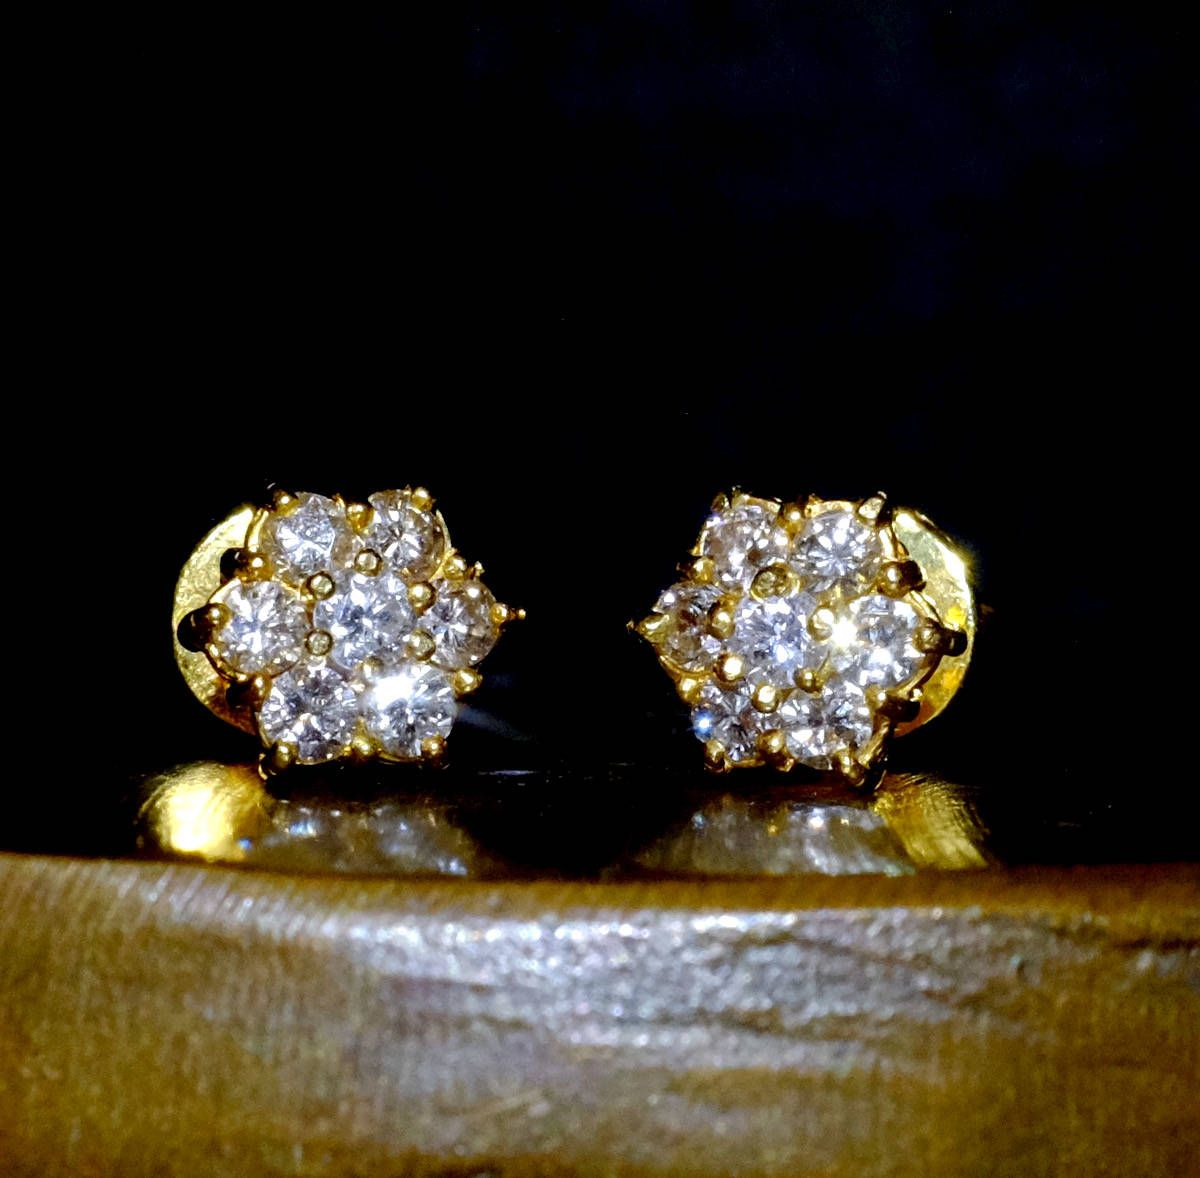 8c4f58f49 Small diamond stud earrings set with 7 diamonds in 20k. These small  diamonds are set very well, for a small pair of studs. The effect of gold  and whi.